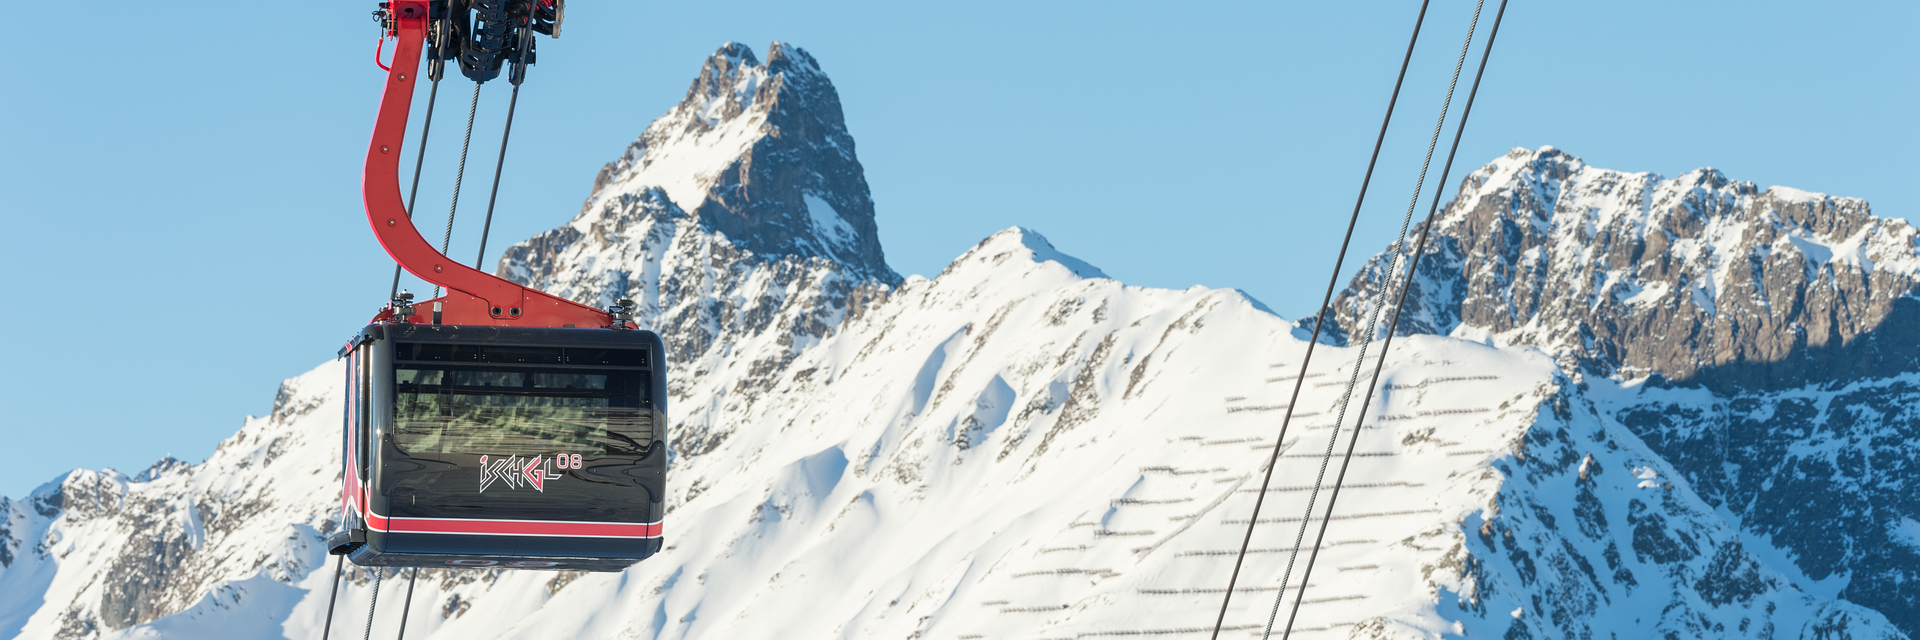 New cableway 3-S Pardatschgratbahn A2 with heated seats in Ischgl